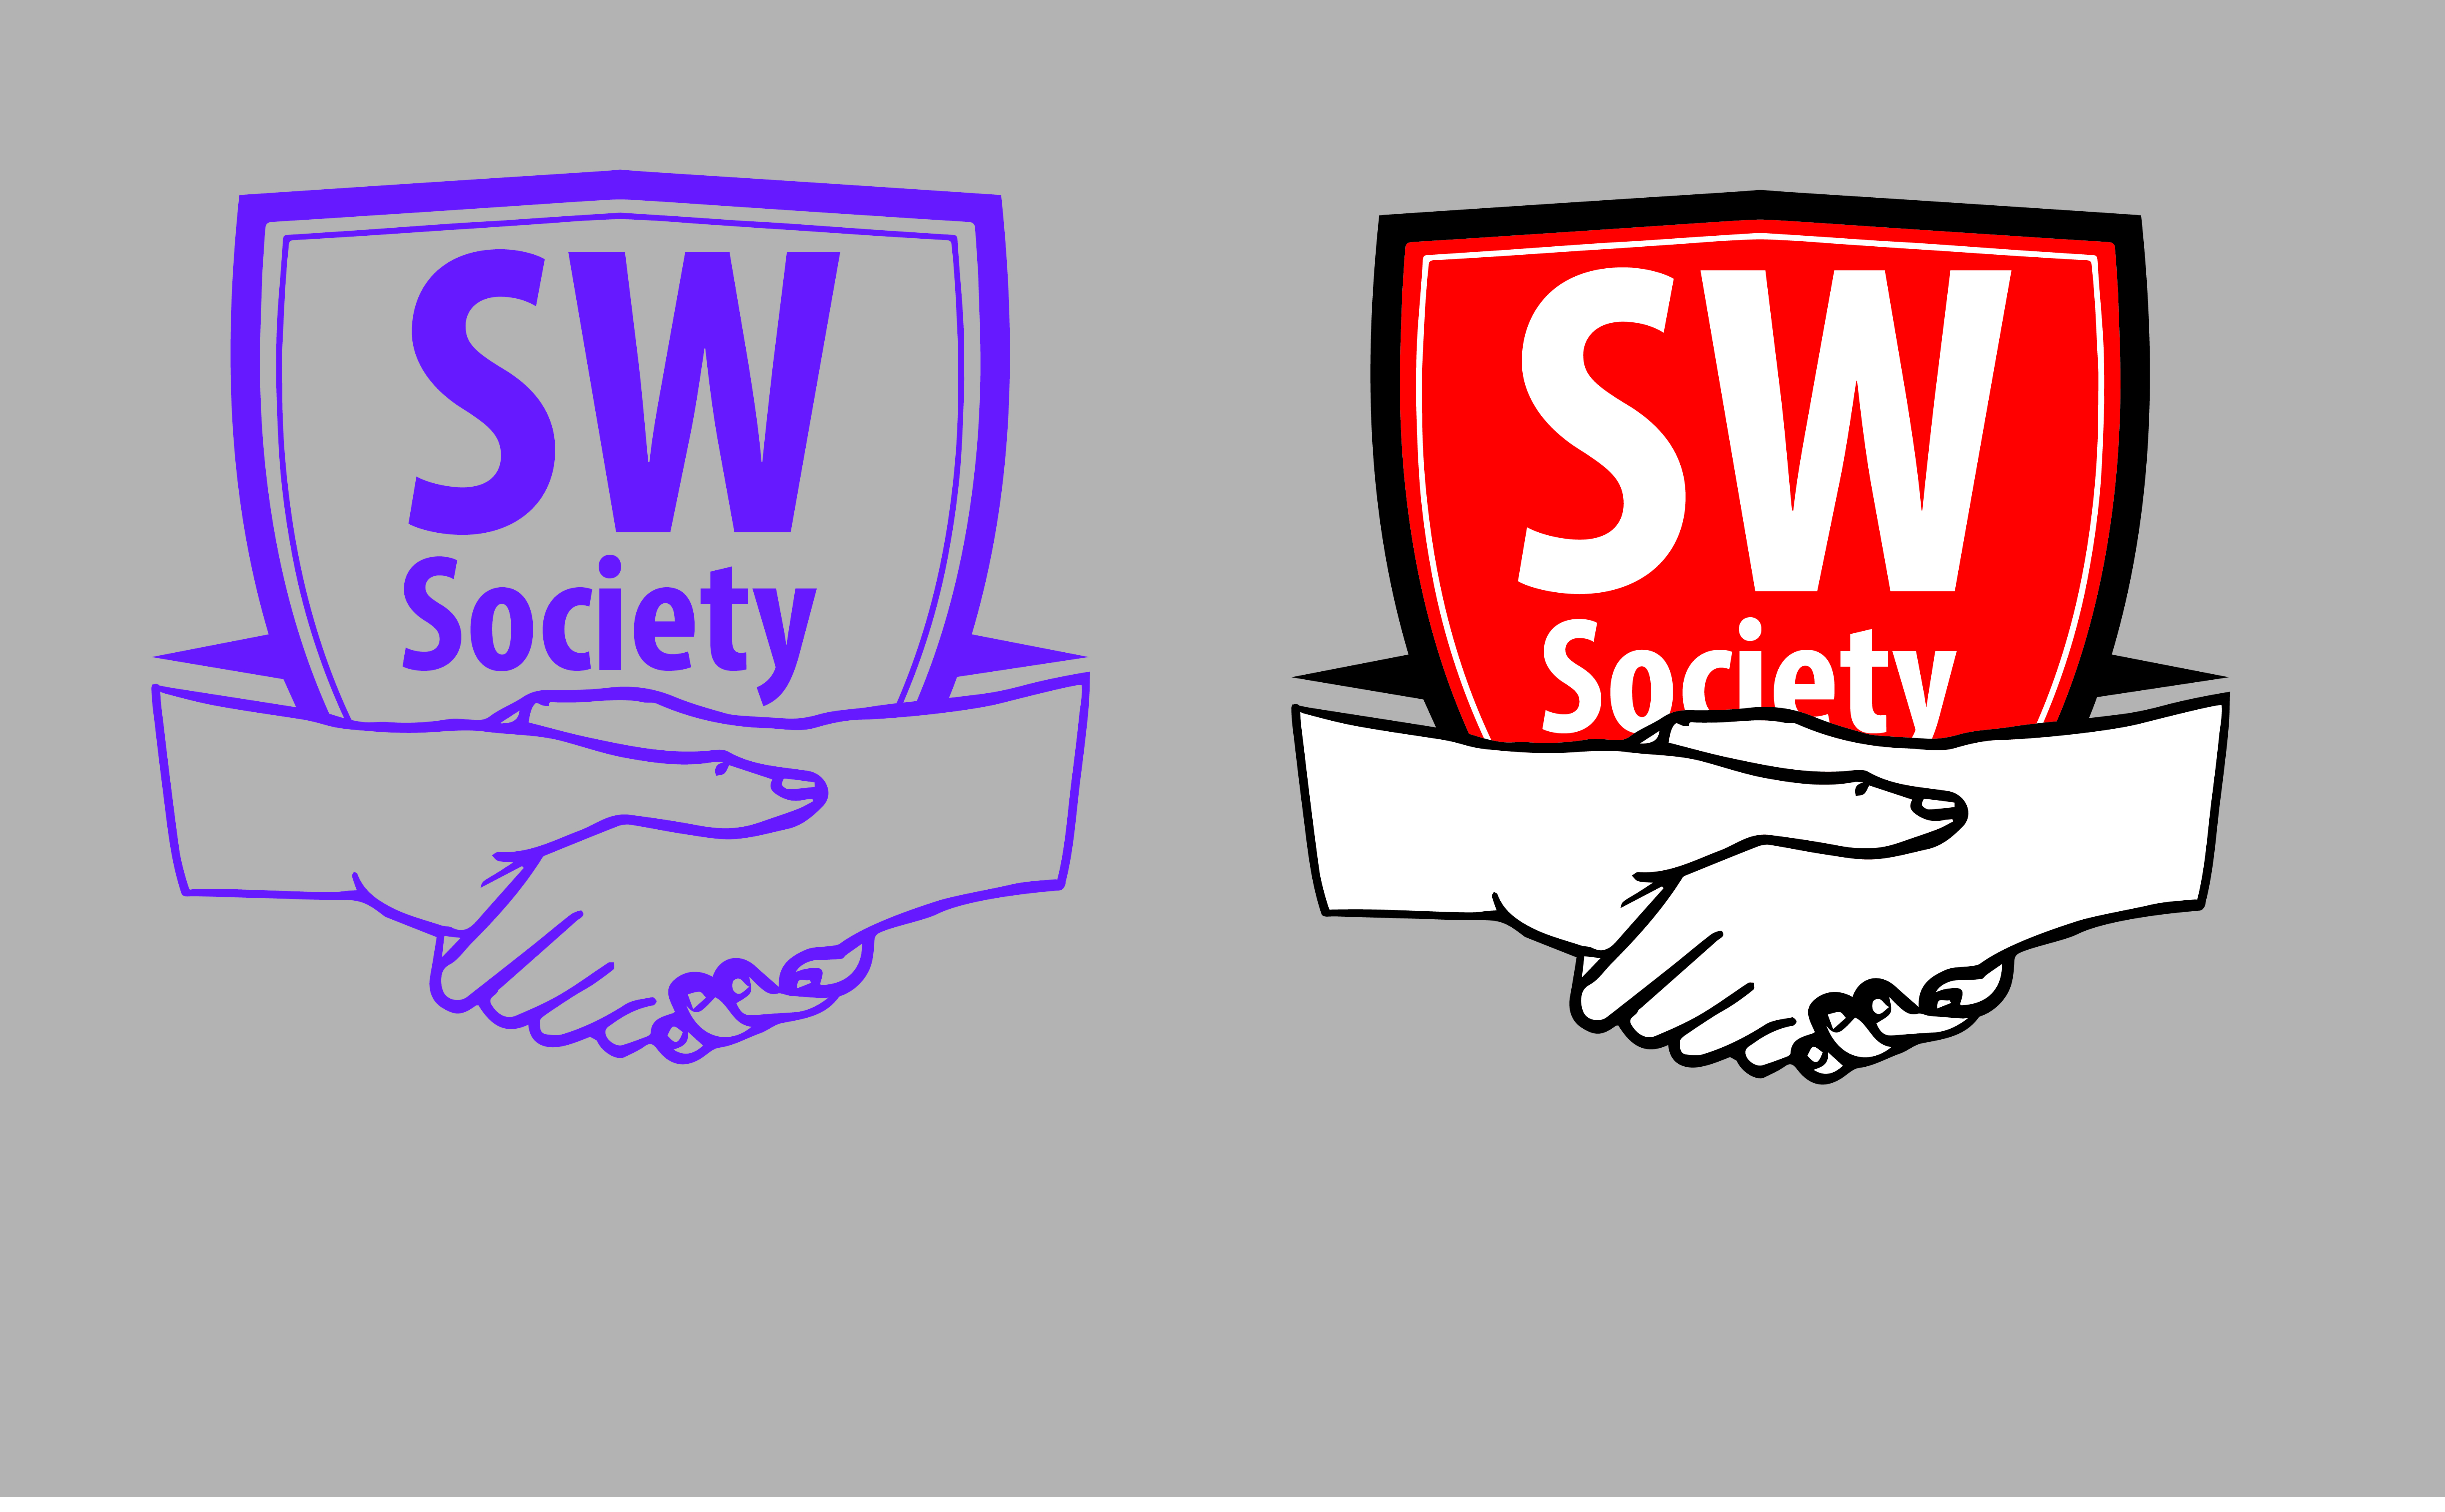 Society clipart social worker Work first portfolio Logo draft